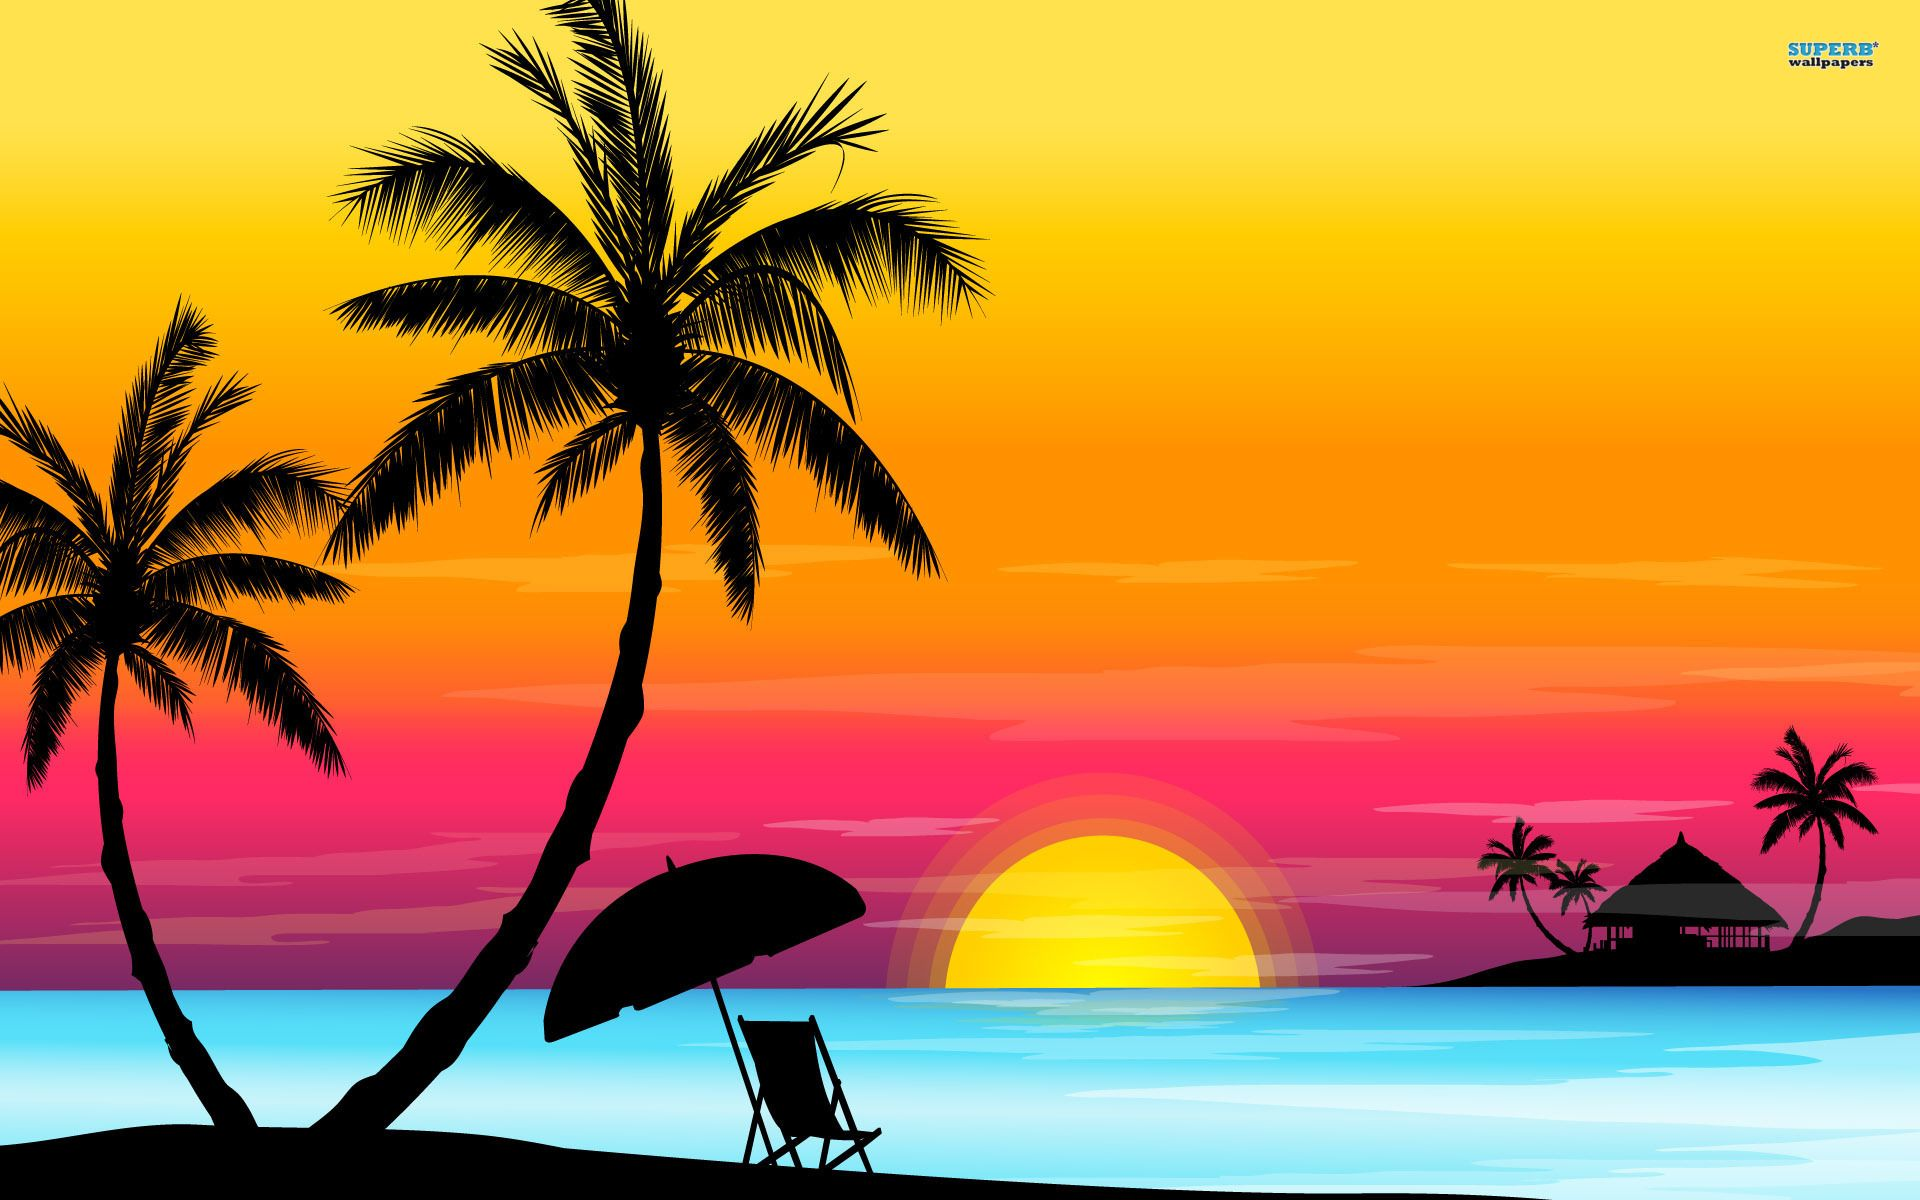 Sunset Beach Background Clipart in 2019.